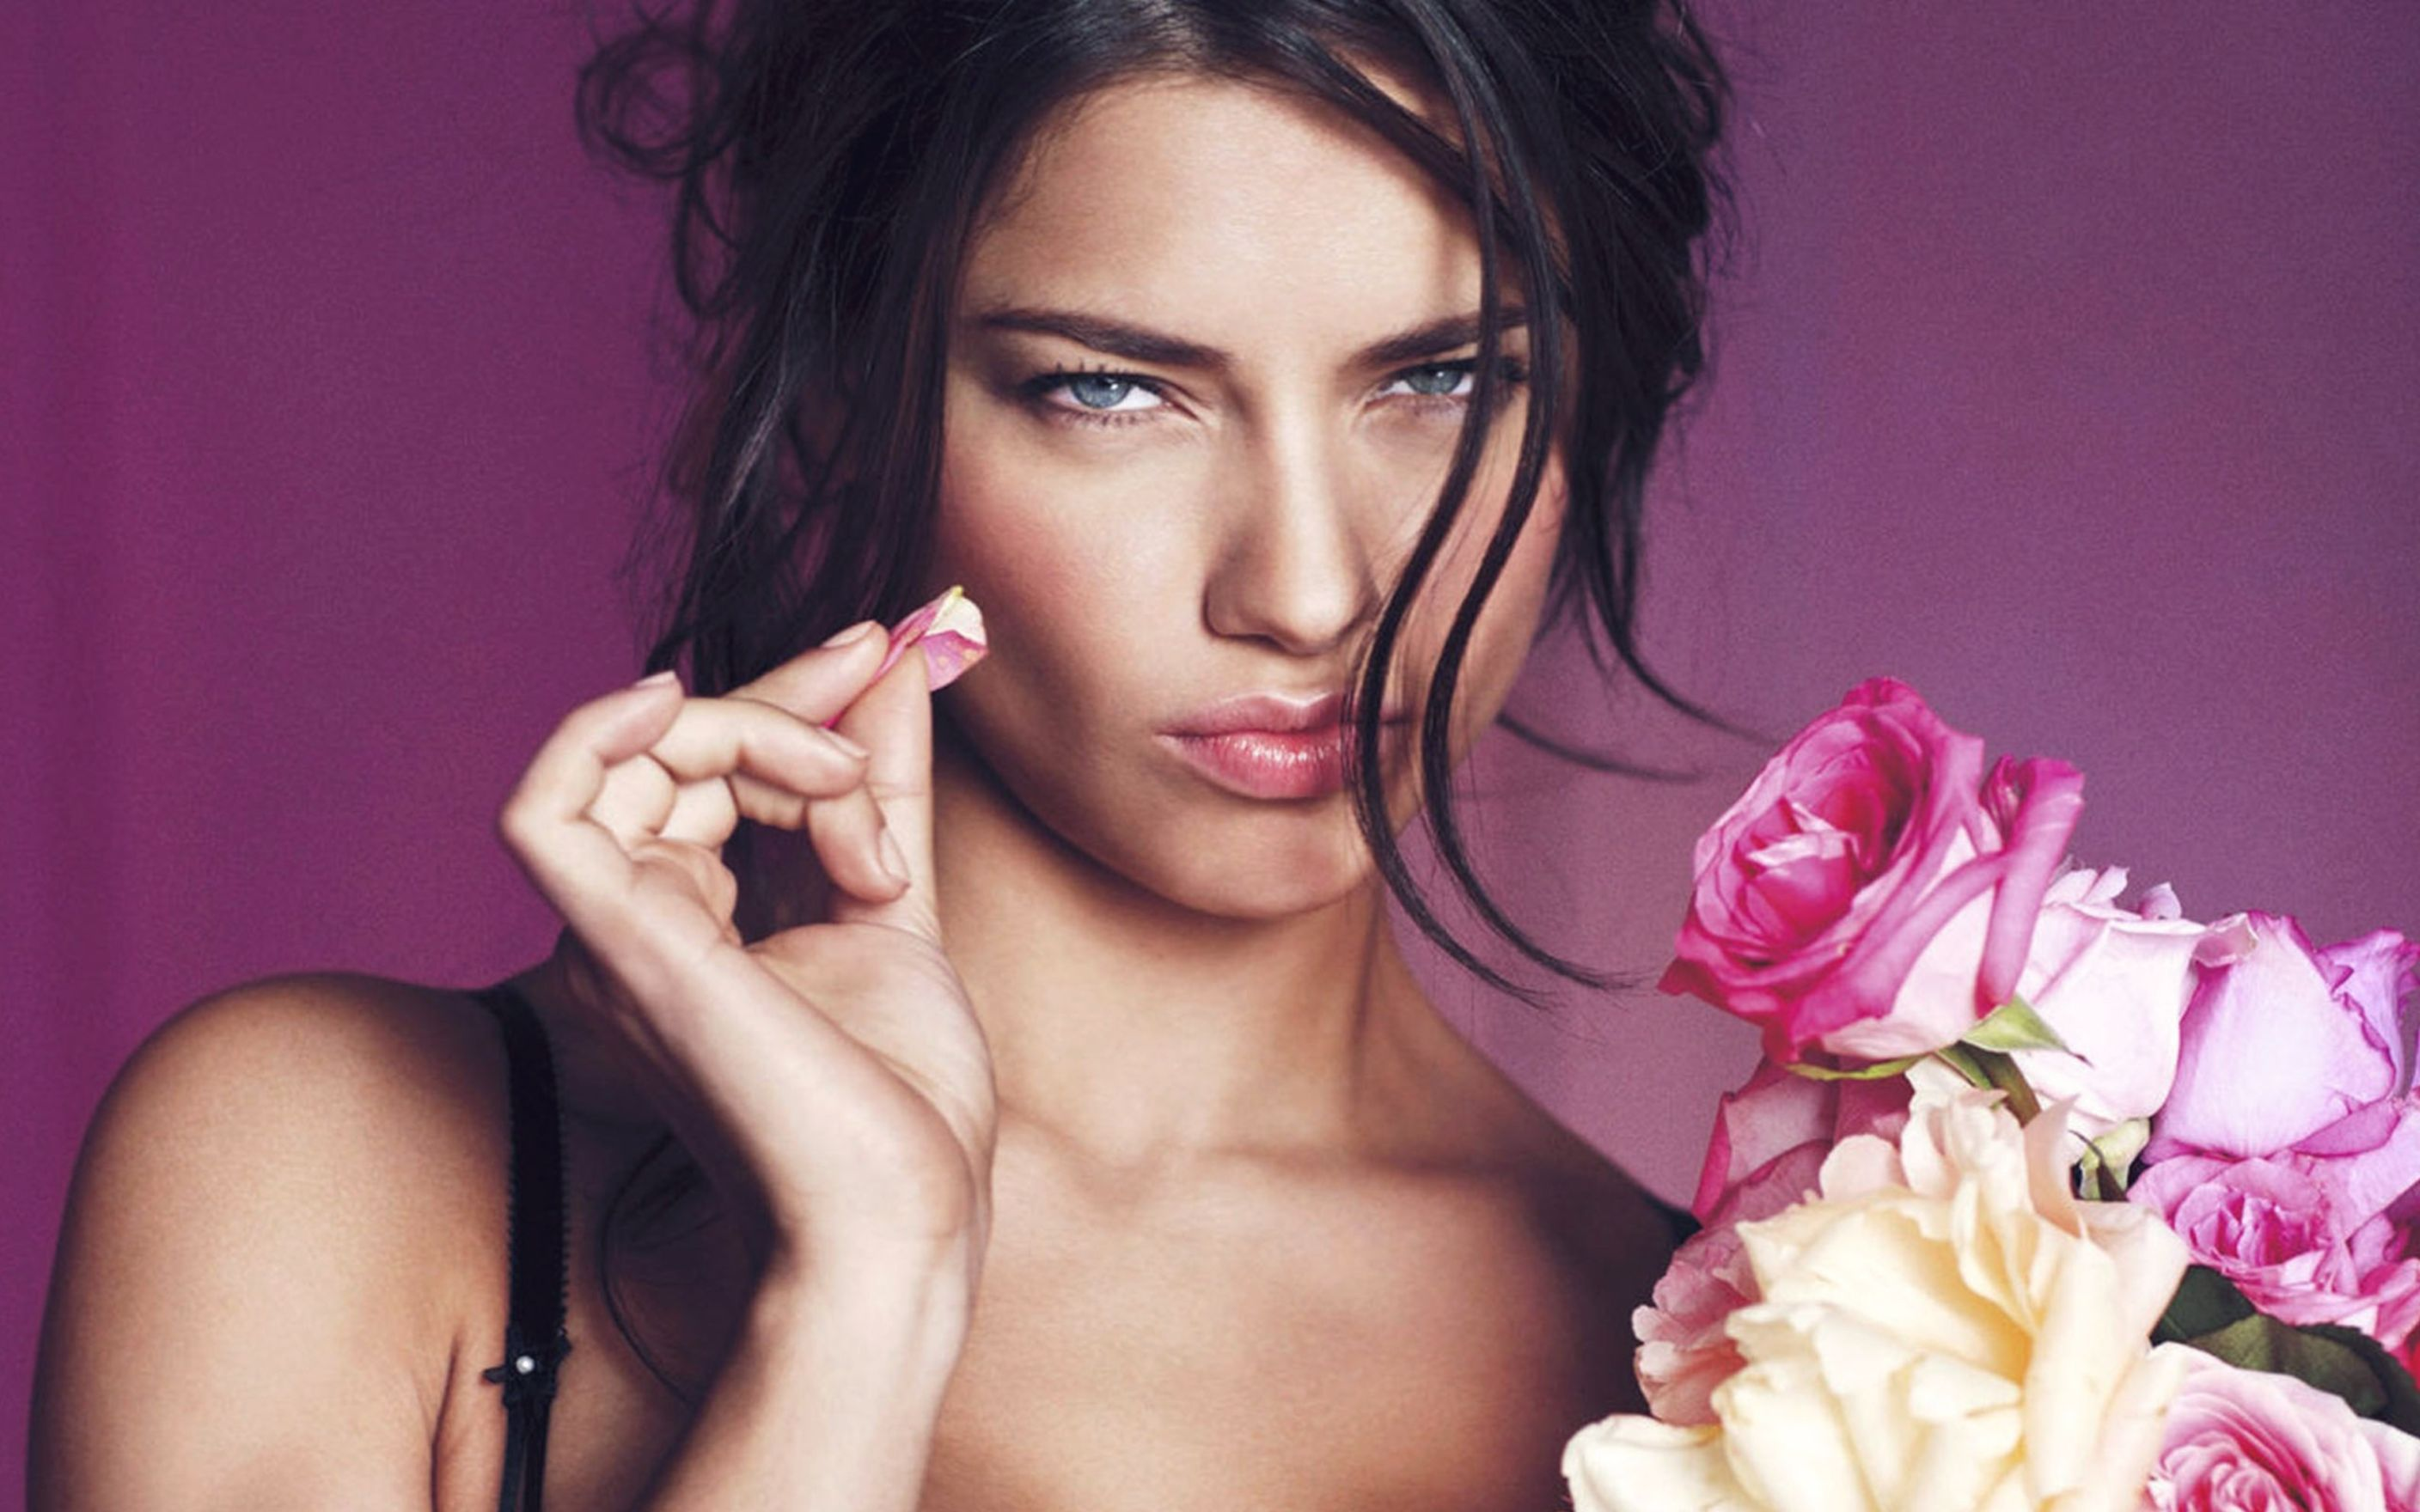 Download free HD Adriana Lima 2012 Wide Wallpaper, image